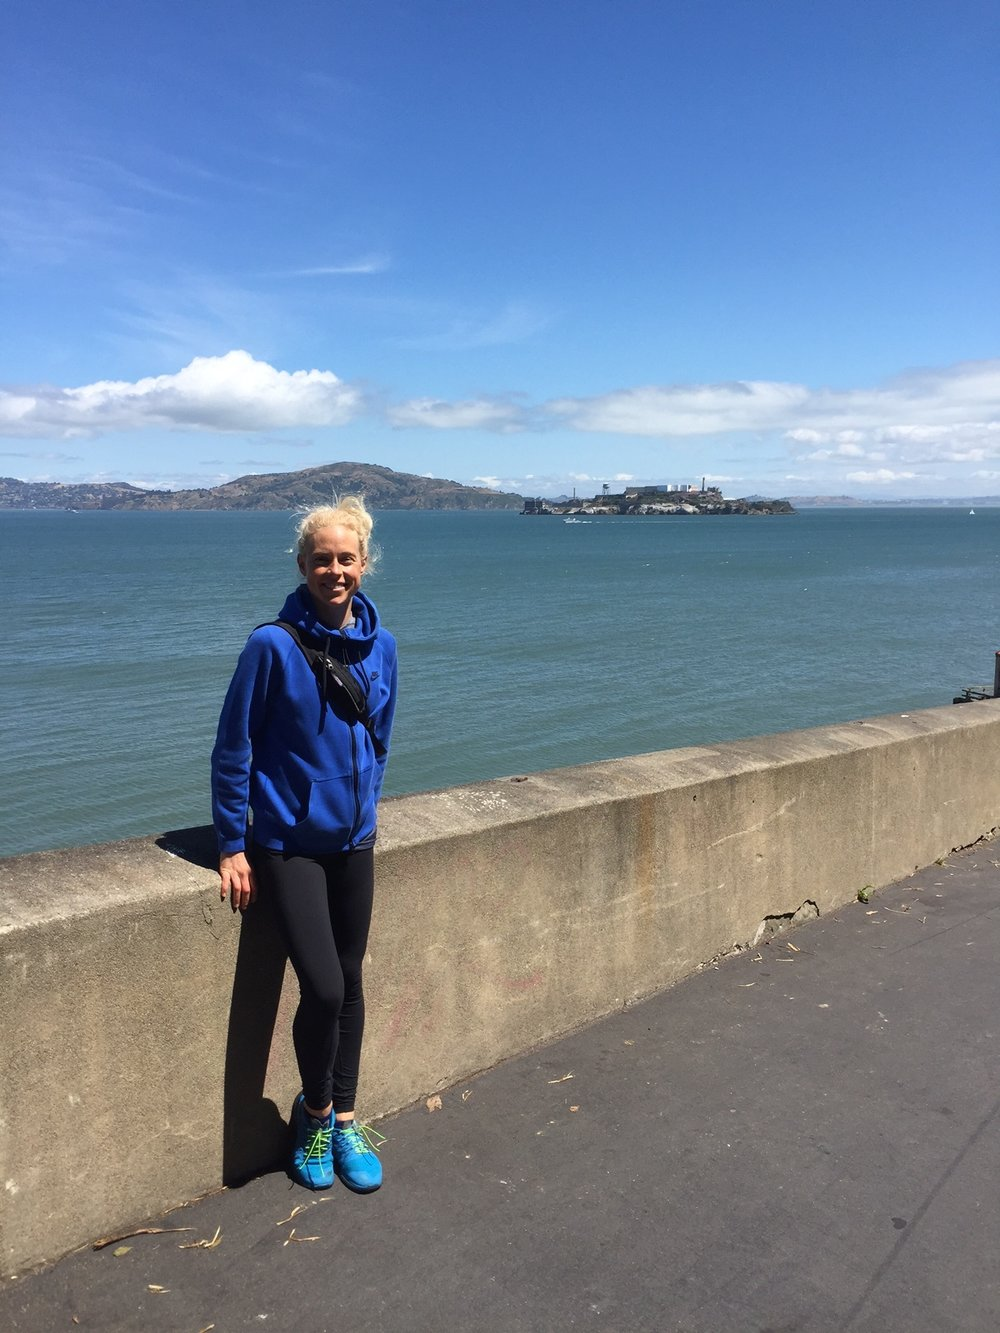 Ending out our 12 mile day of walking through the streets of San Fran! There was a park we walked through with great views above the bay. This is me with Alcatraz Island in the background!